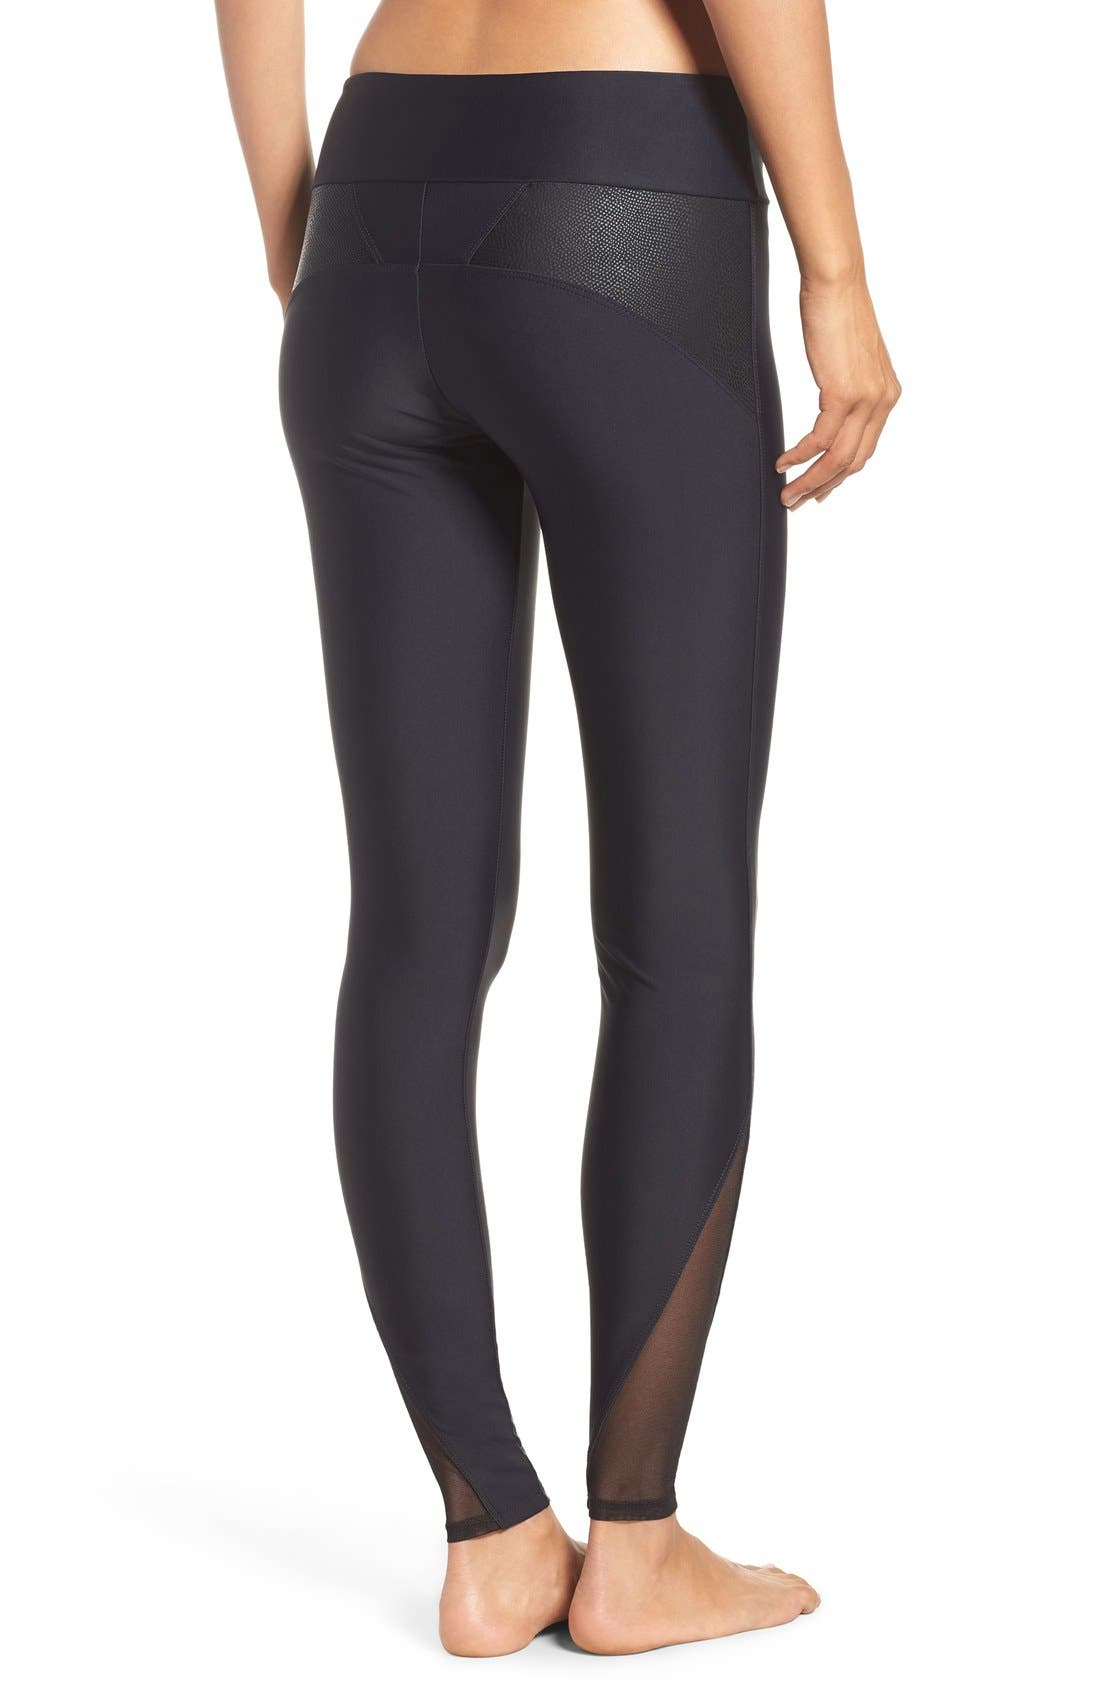 Shaper Leggings,                             Alternate thumbnail 7, color,                             001